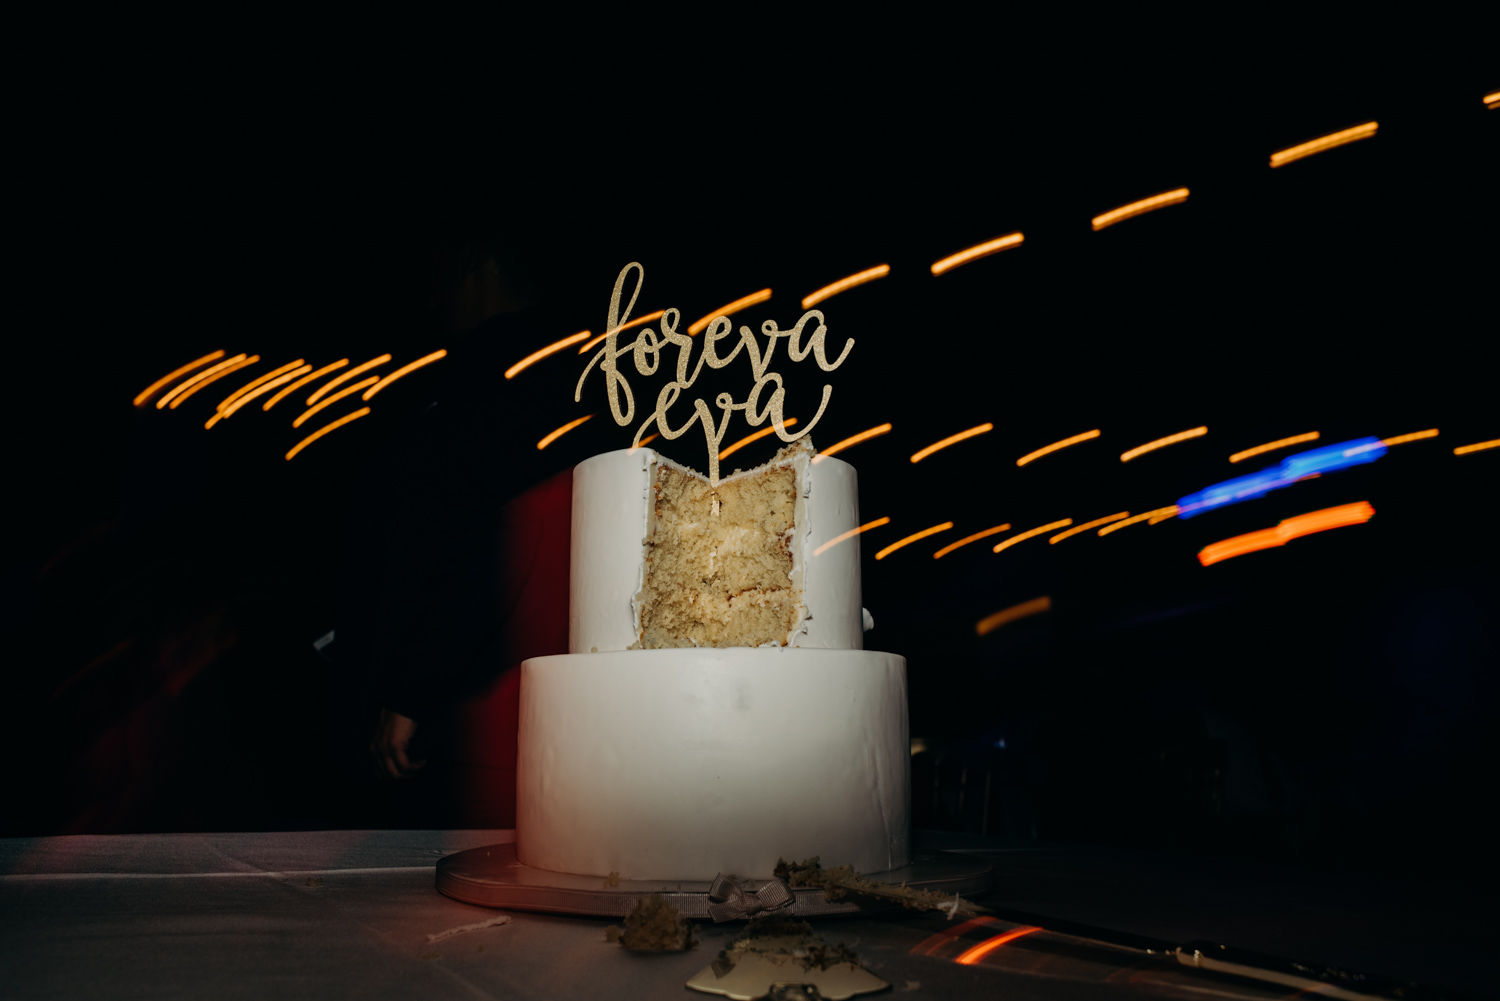 The wedding cake photographed after the couple cut into it during their reception at the Omni Hotel in Cancun, Mexico.